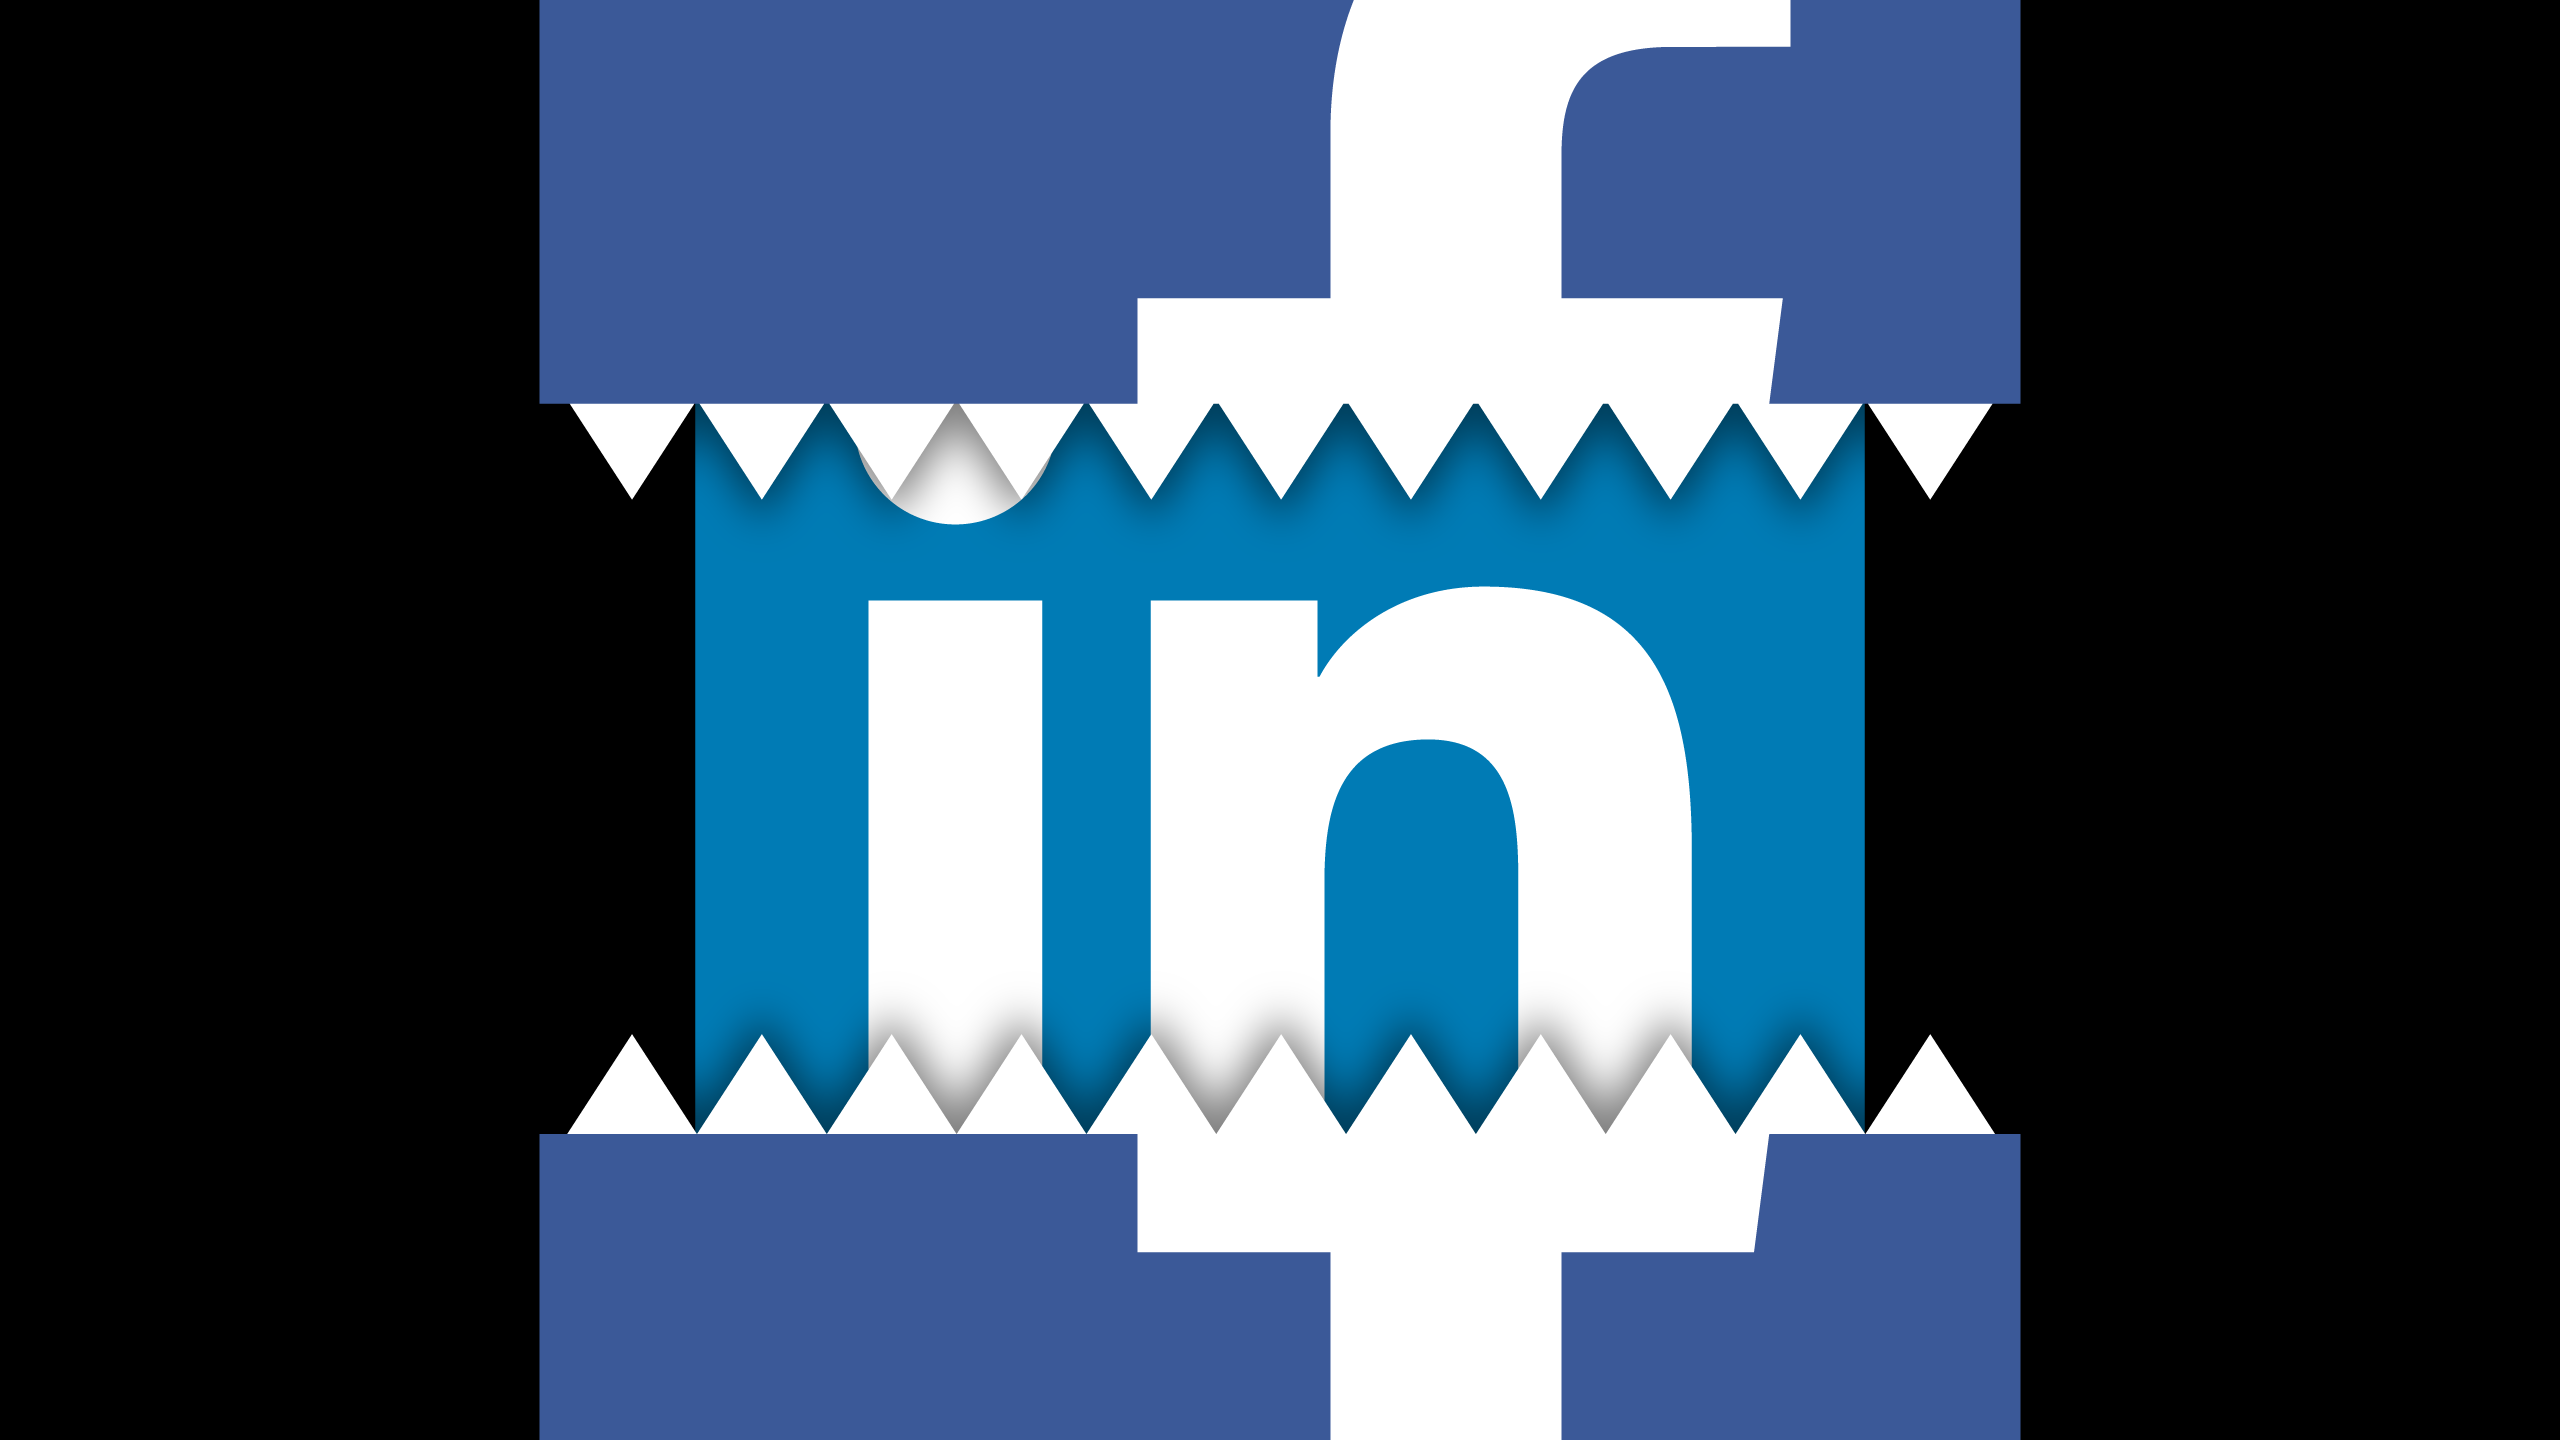 Facebooks new job opening posts poach business from linkedin facebooks new job opening posts poach business from linkedin techcrunch falaconquin